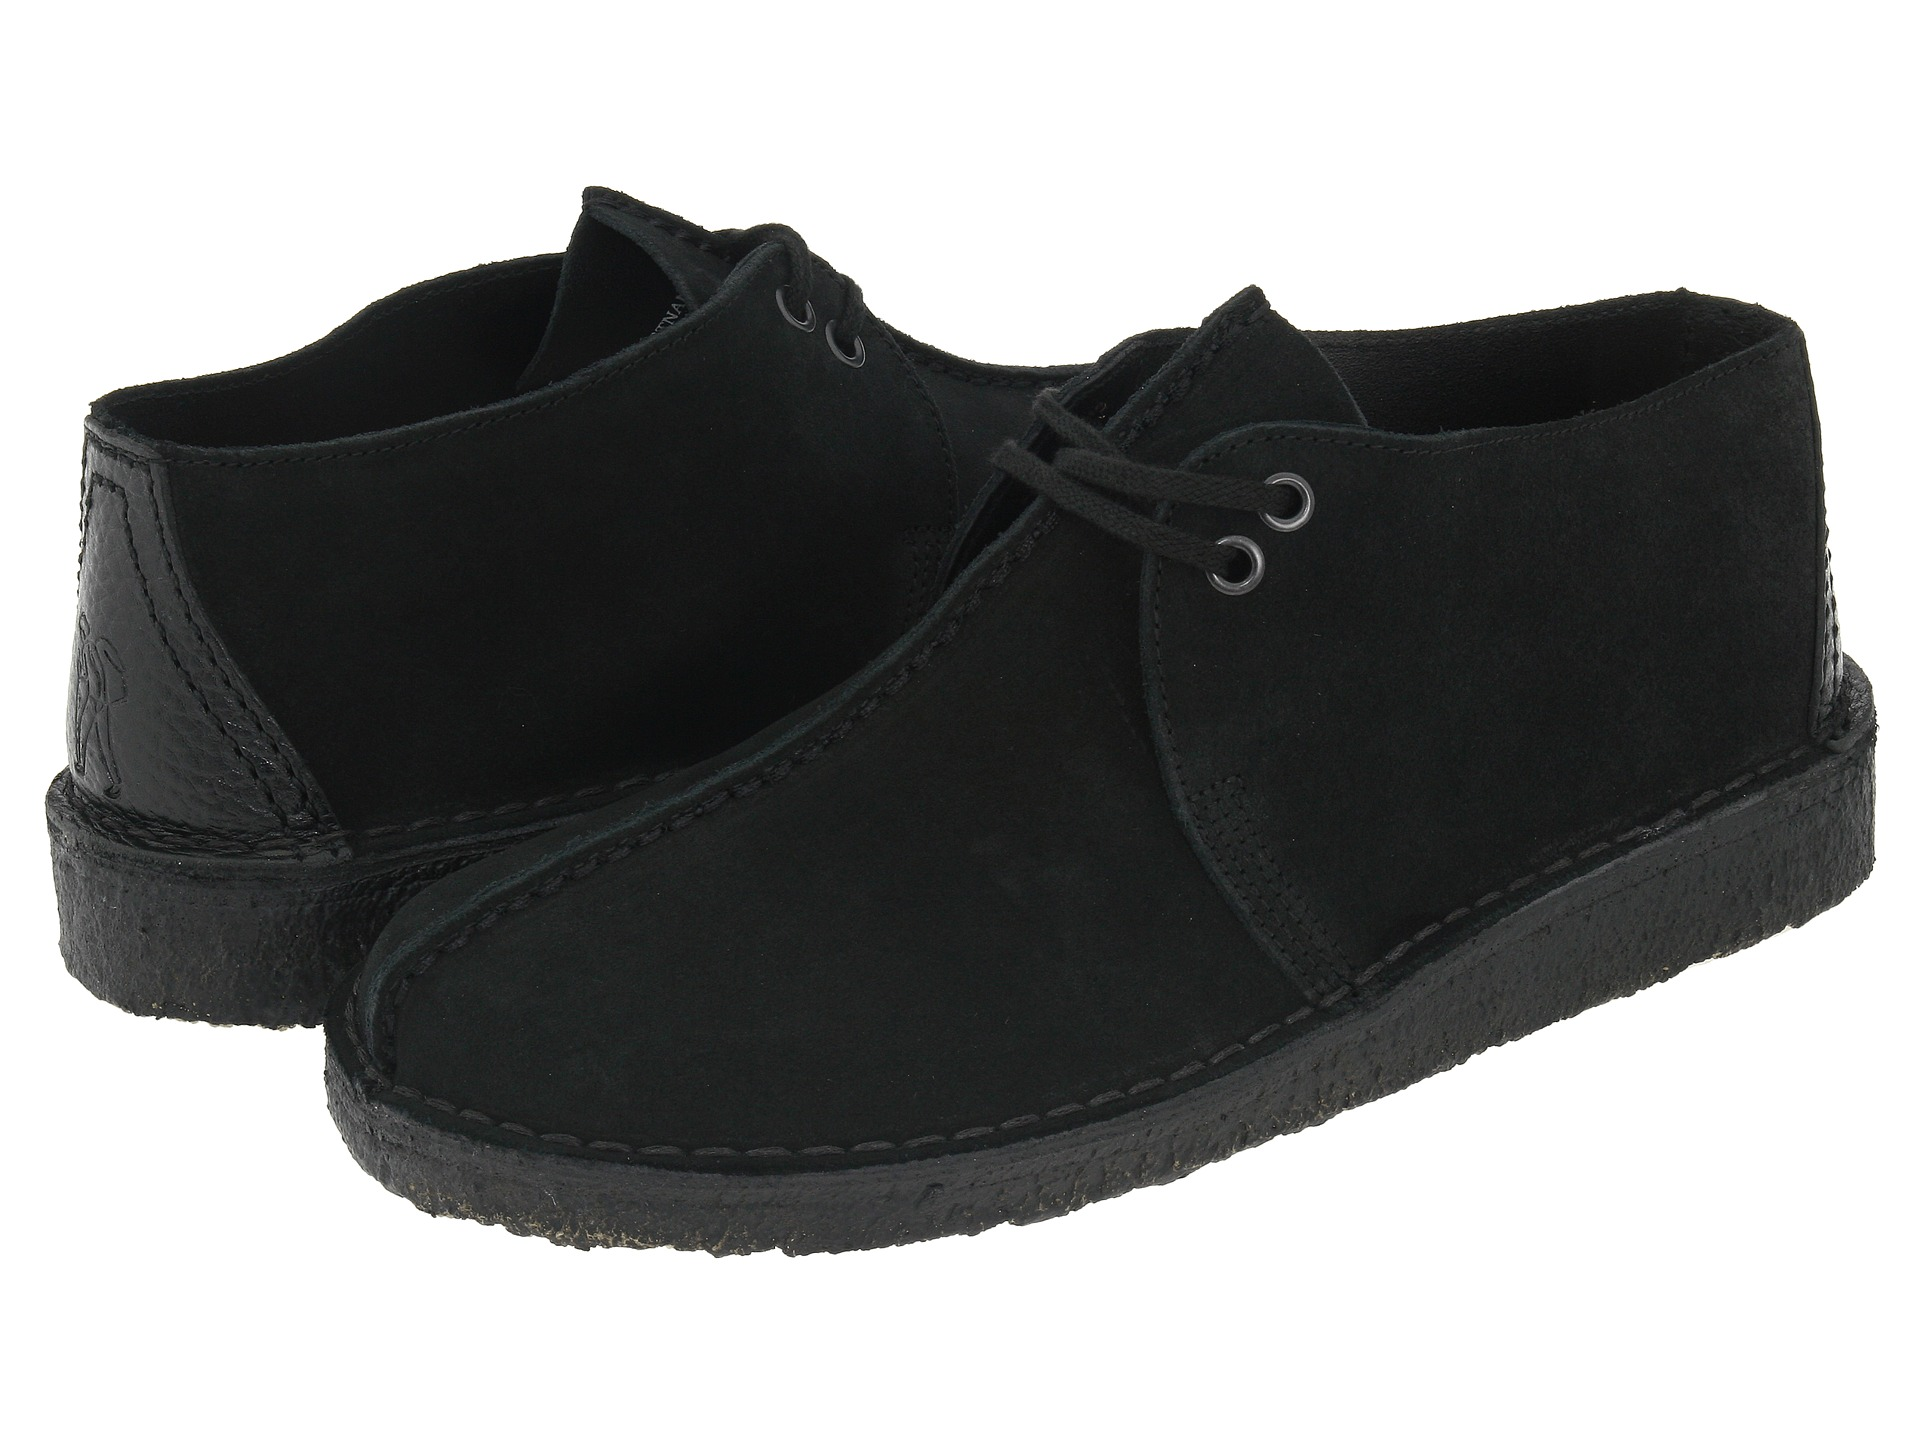 Clarks Girls Black Shoes